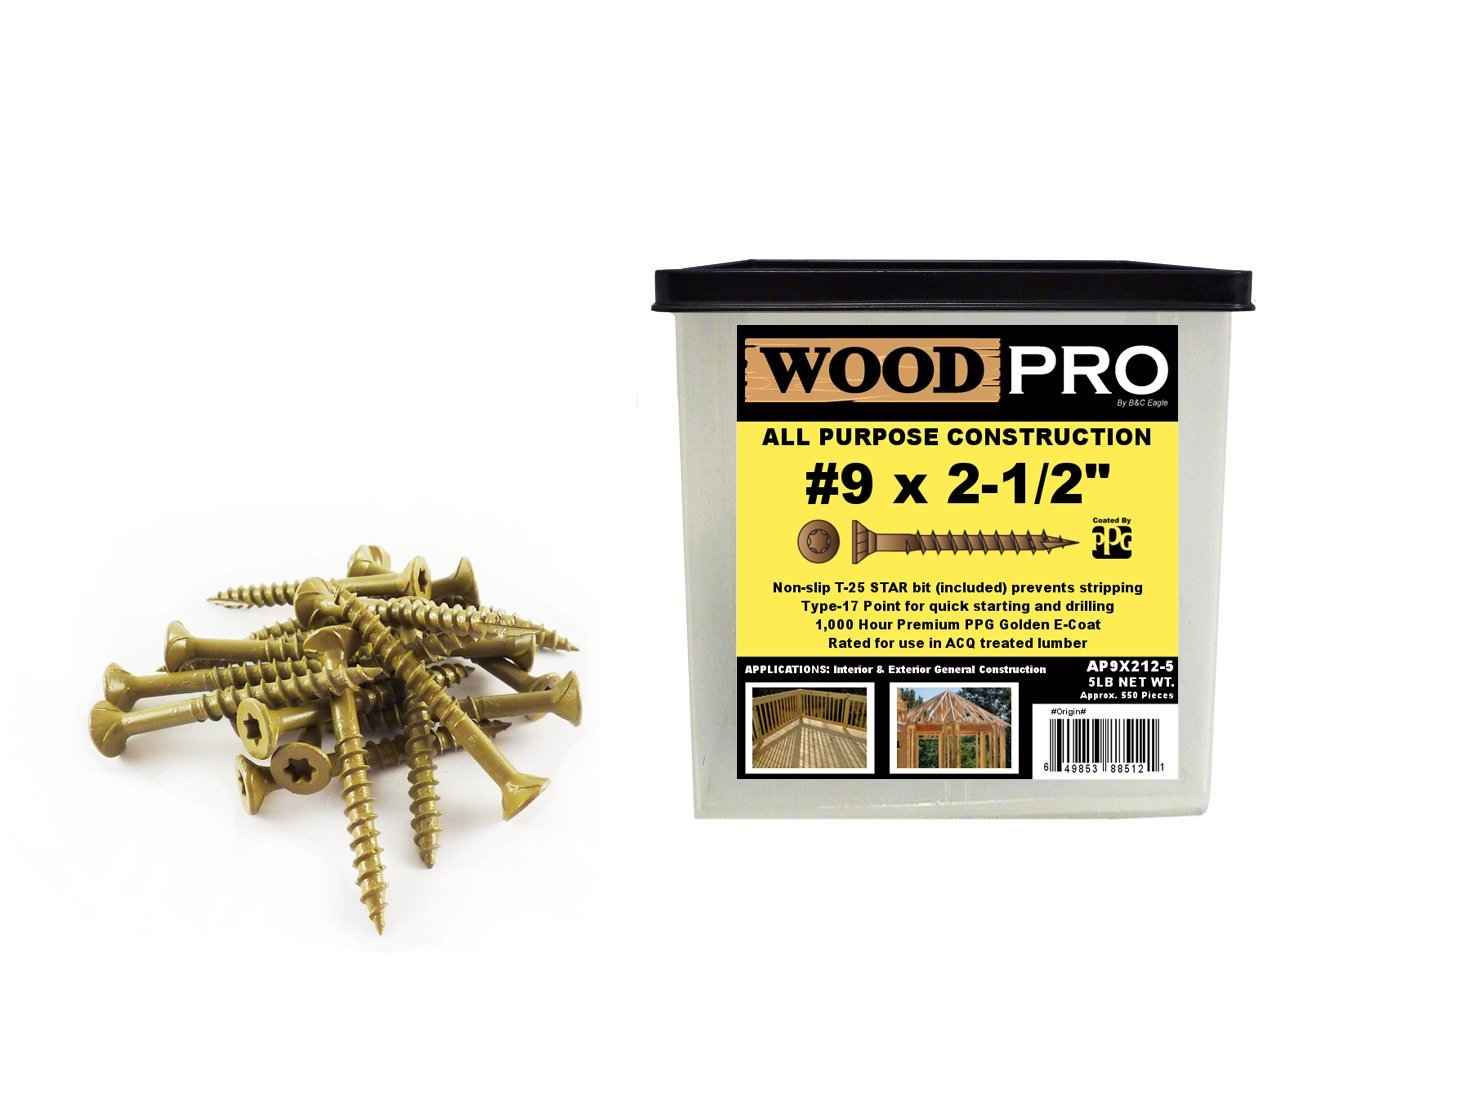 WoodPro Fasteners AP9X212-5 T25 5-Pound Net Weight 9 by 2-1/2-Inch All Purpose Wood Construction Screws, 500-Piece by WoodPro Fasteners